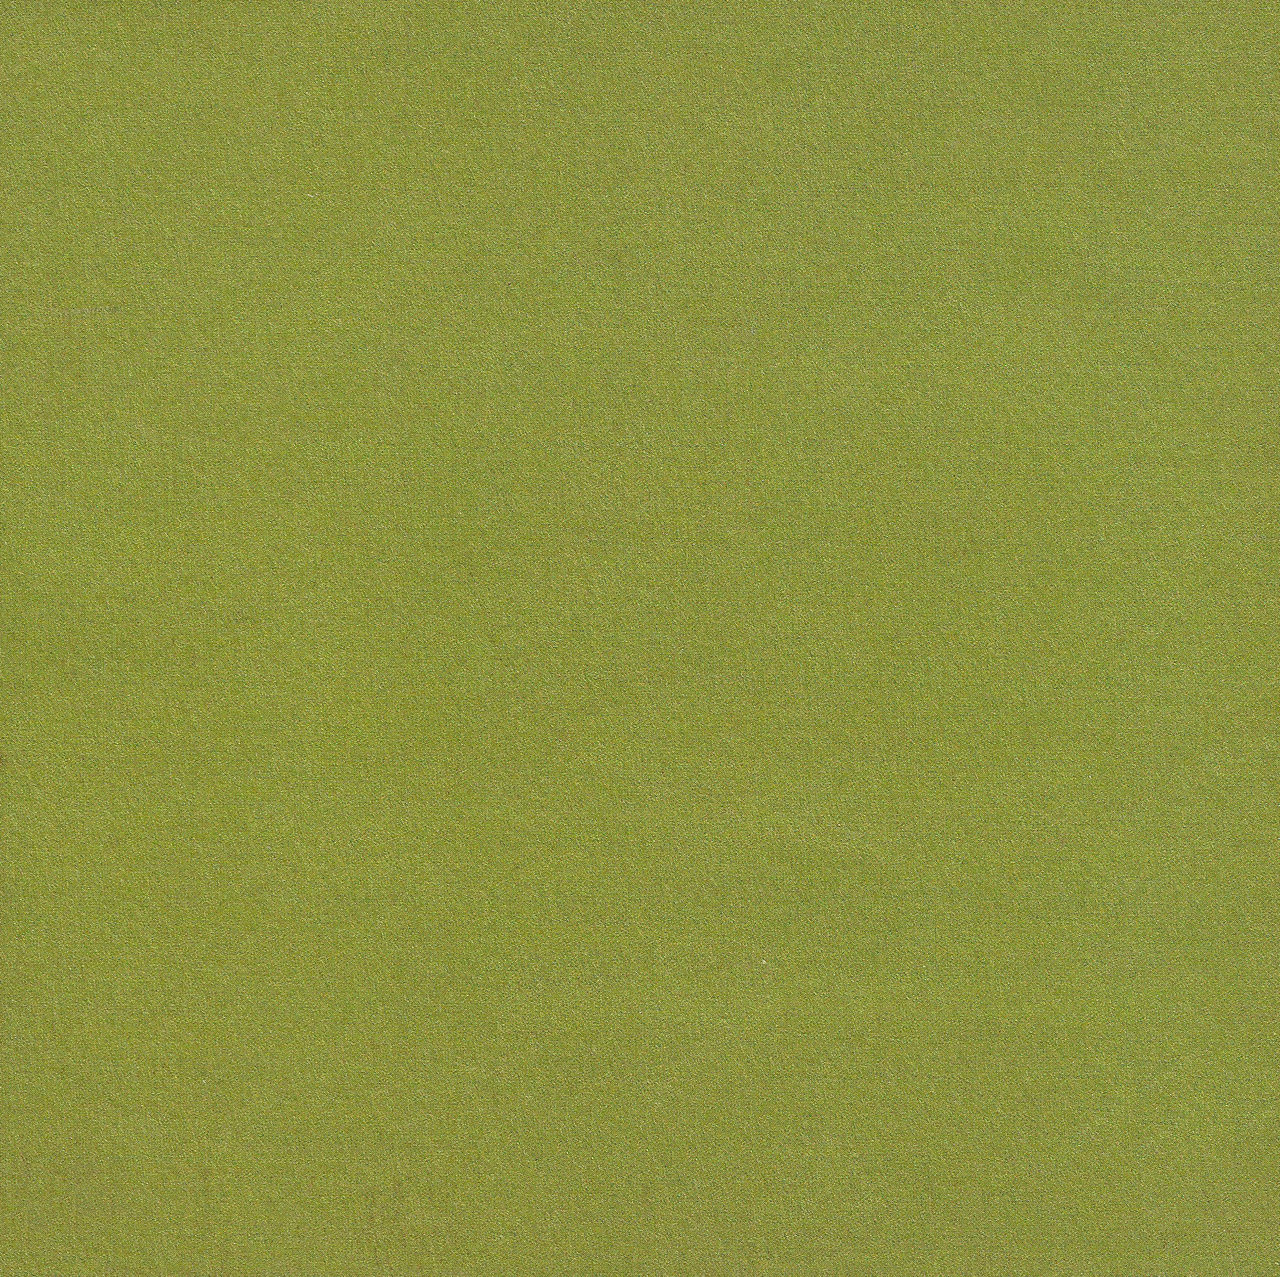 Olive Green Paper Background by Enchantedgal Stock on 1280x1277